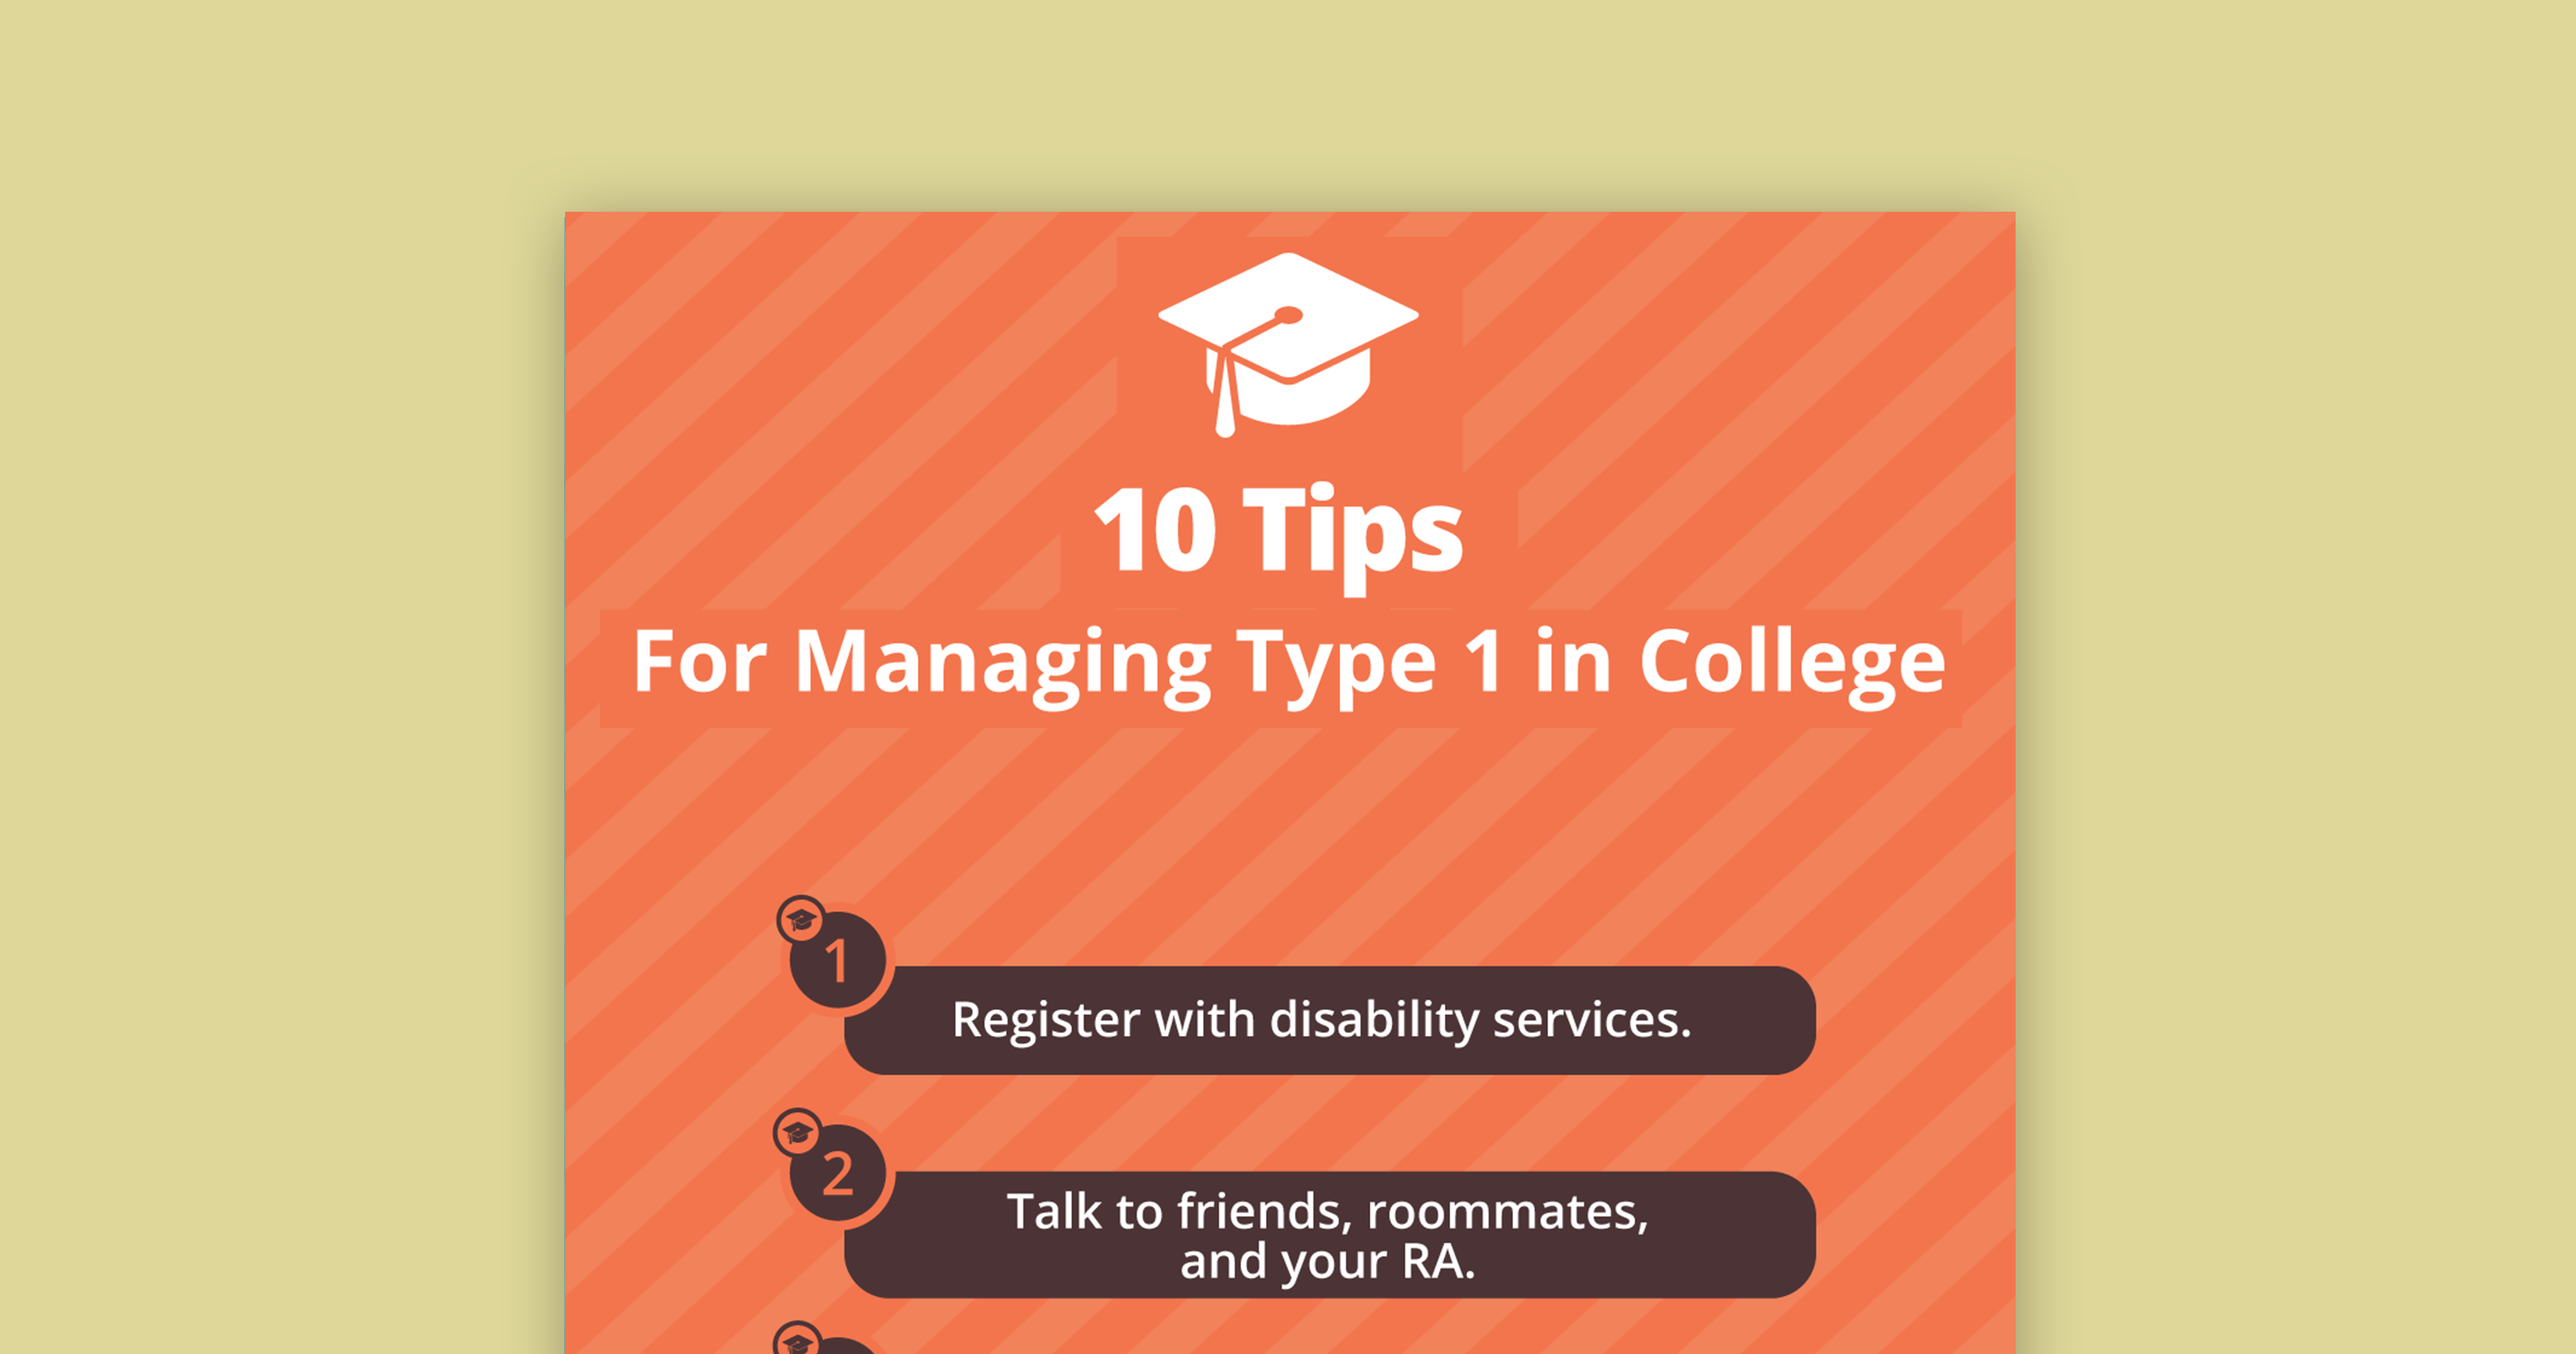 type 1 diabetes, college, tips